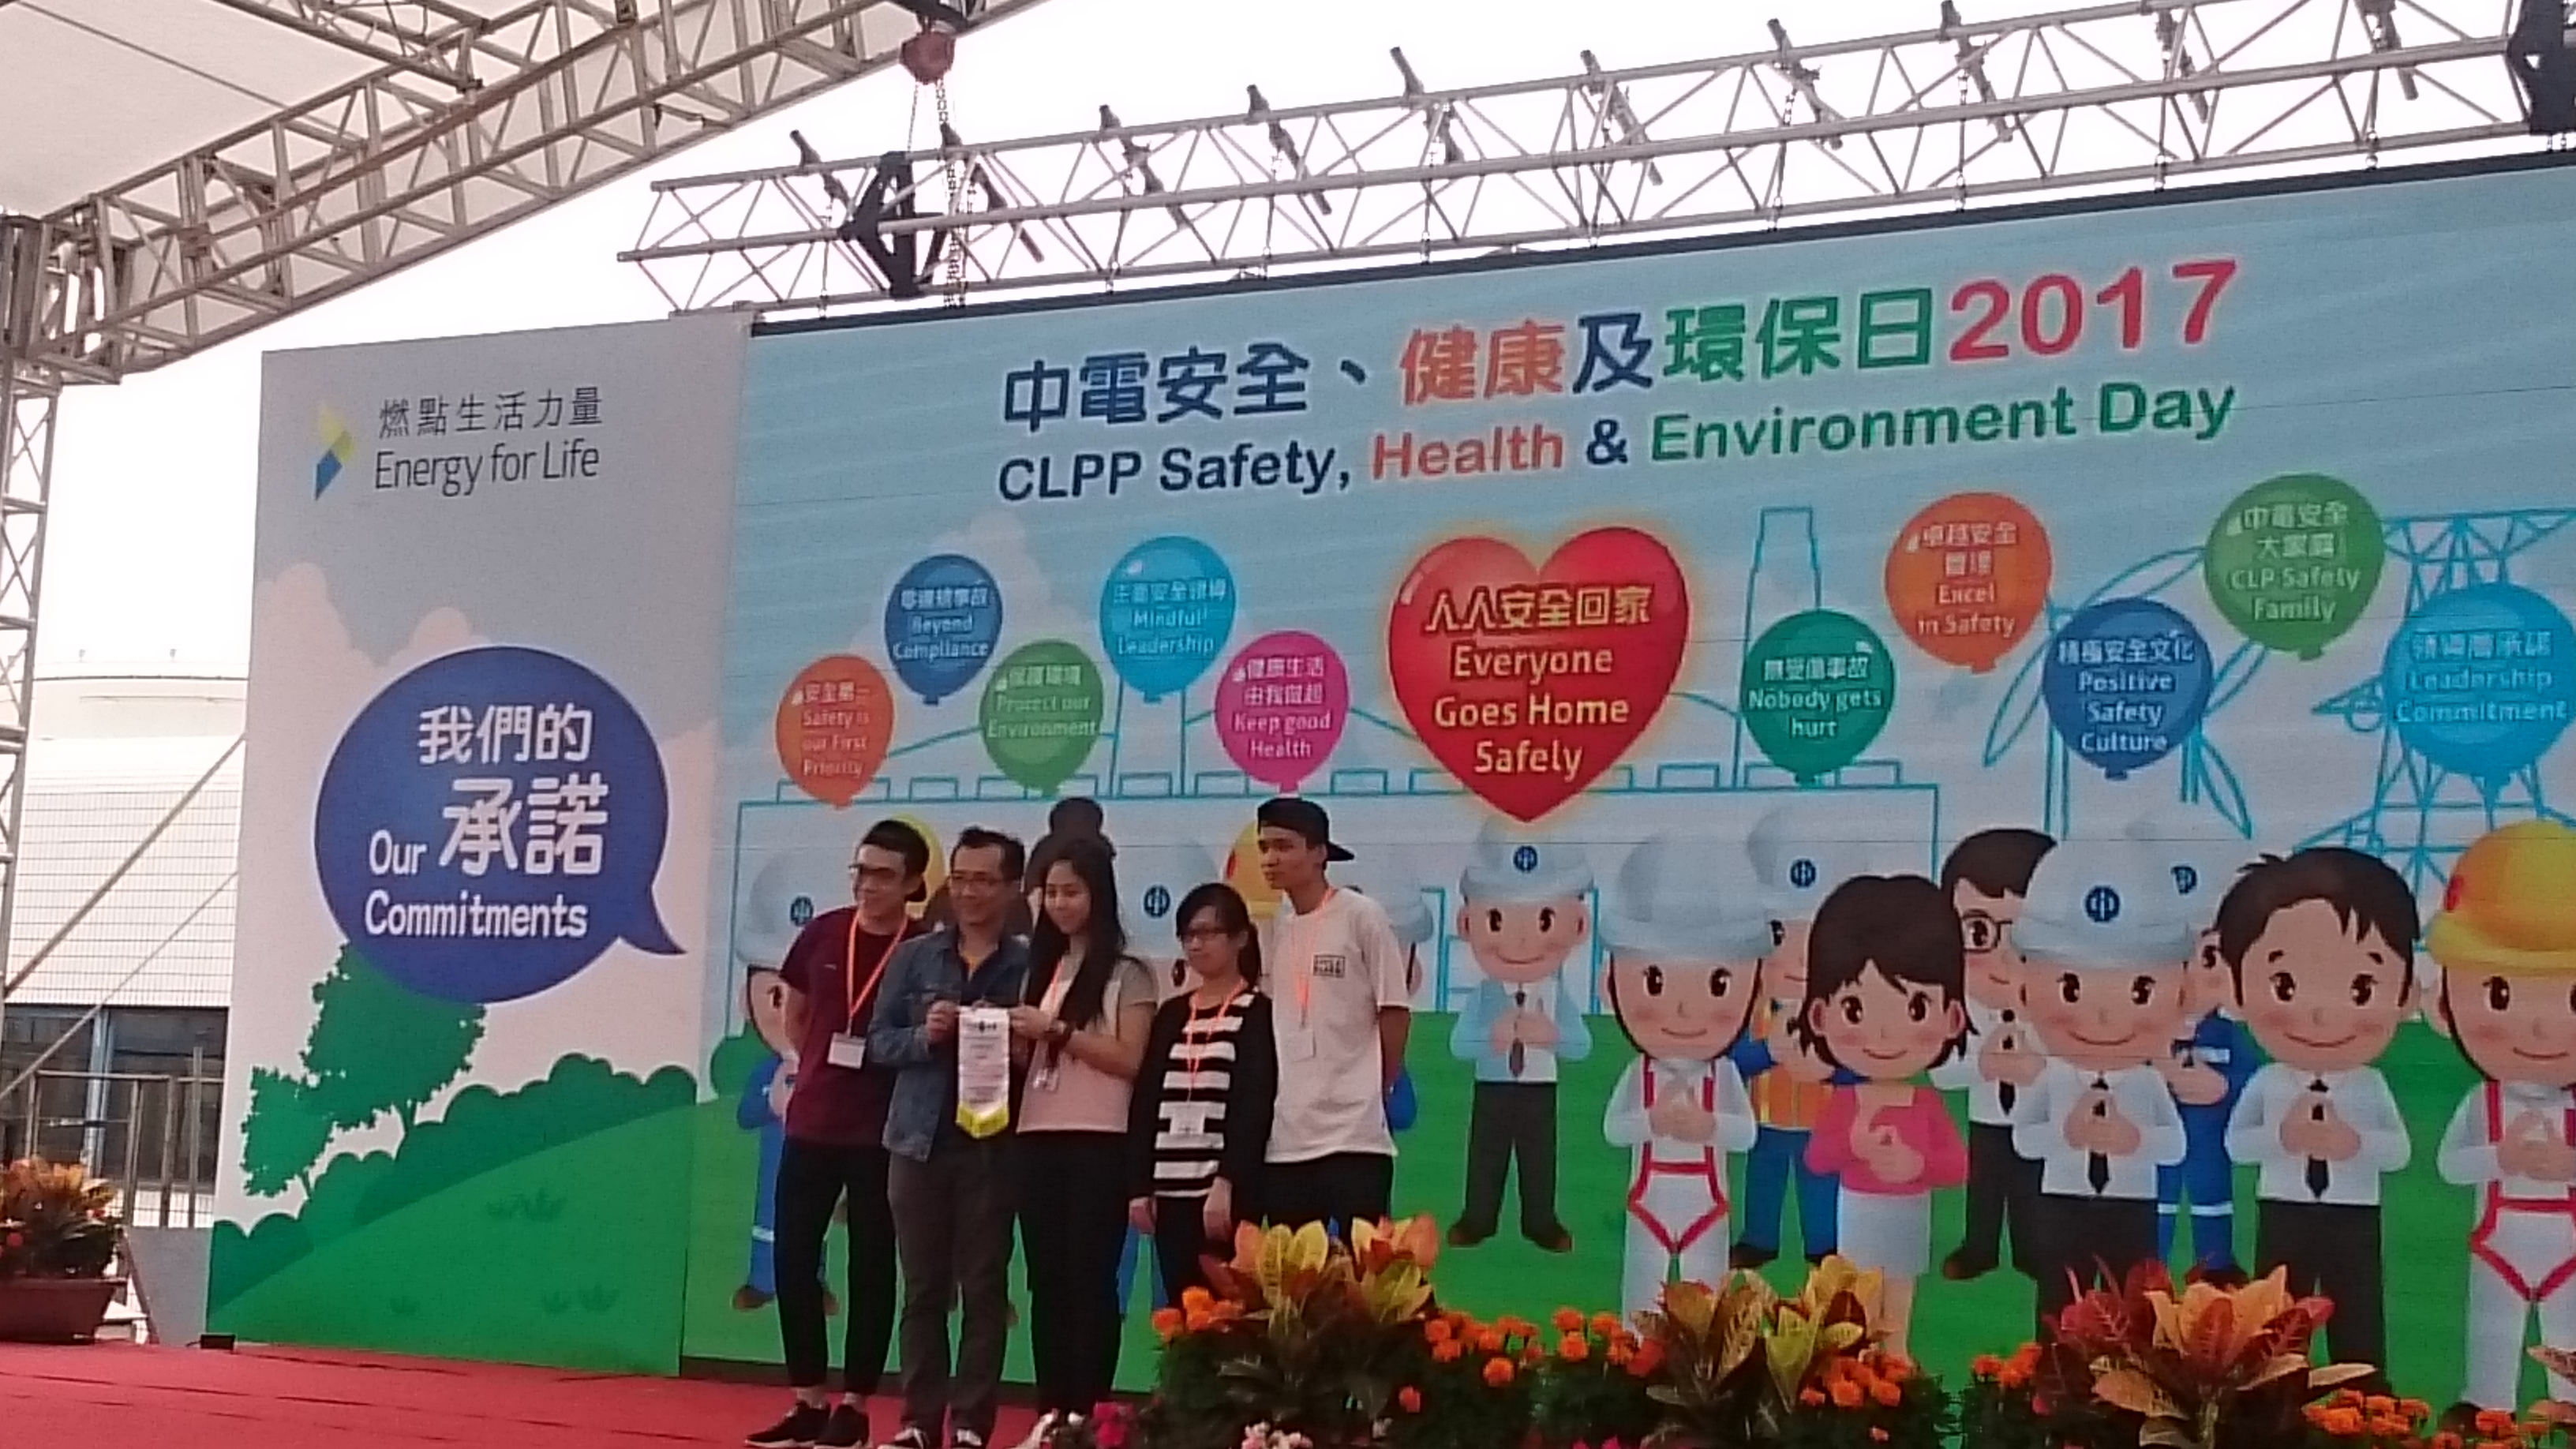 CLP Safety, Health & Environment (SHE) Day in 2017 - Photo - 5